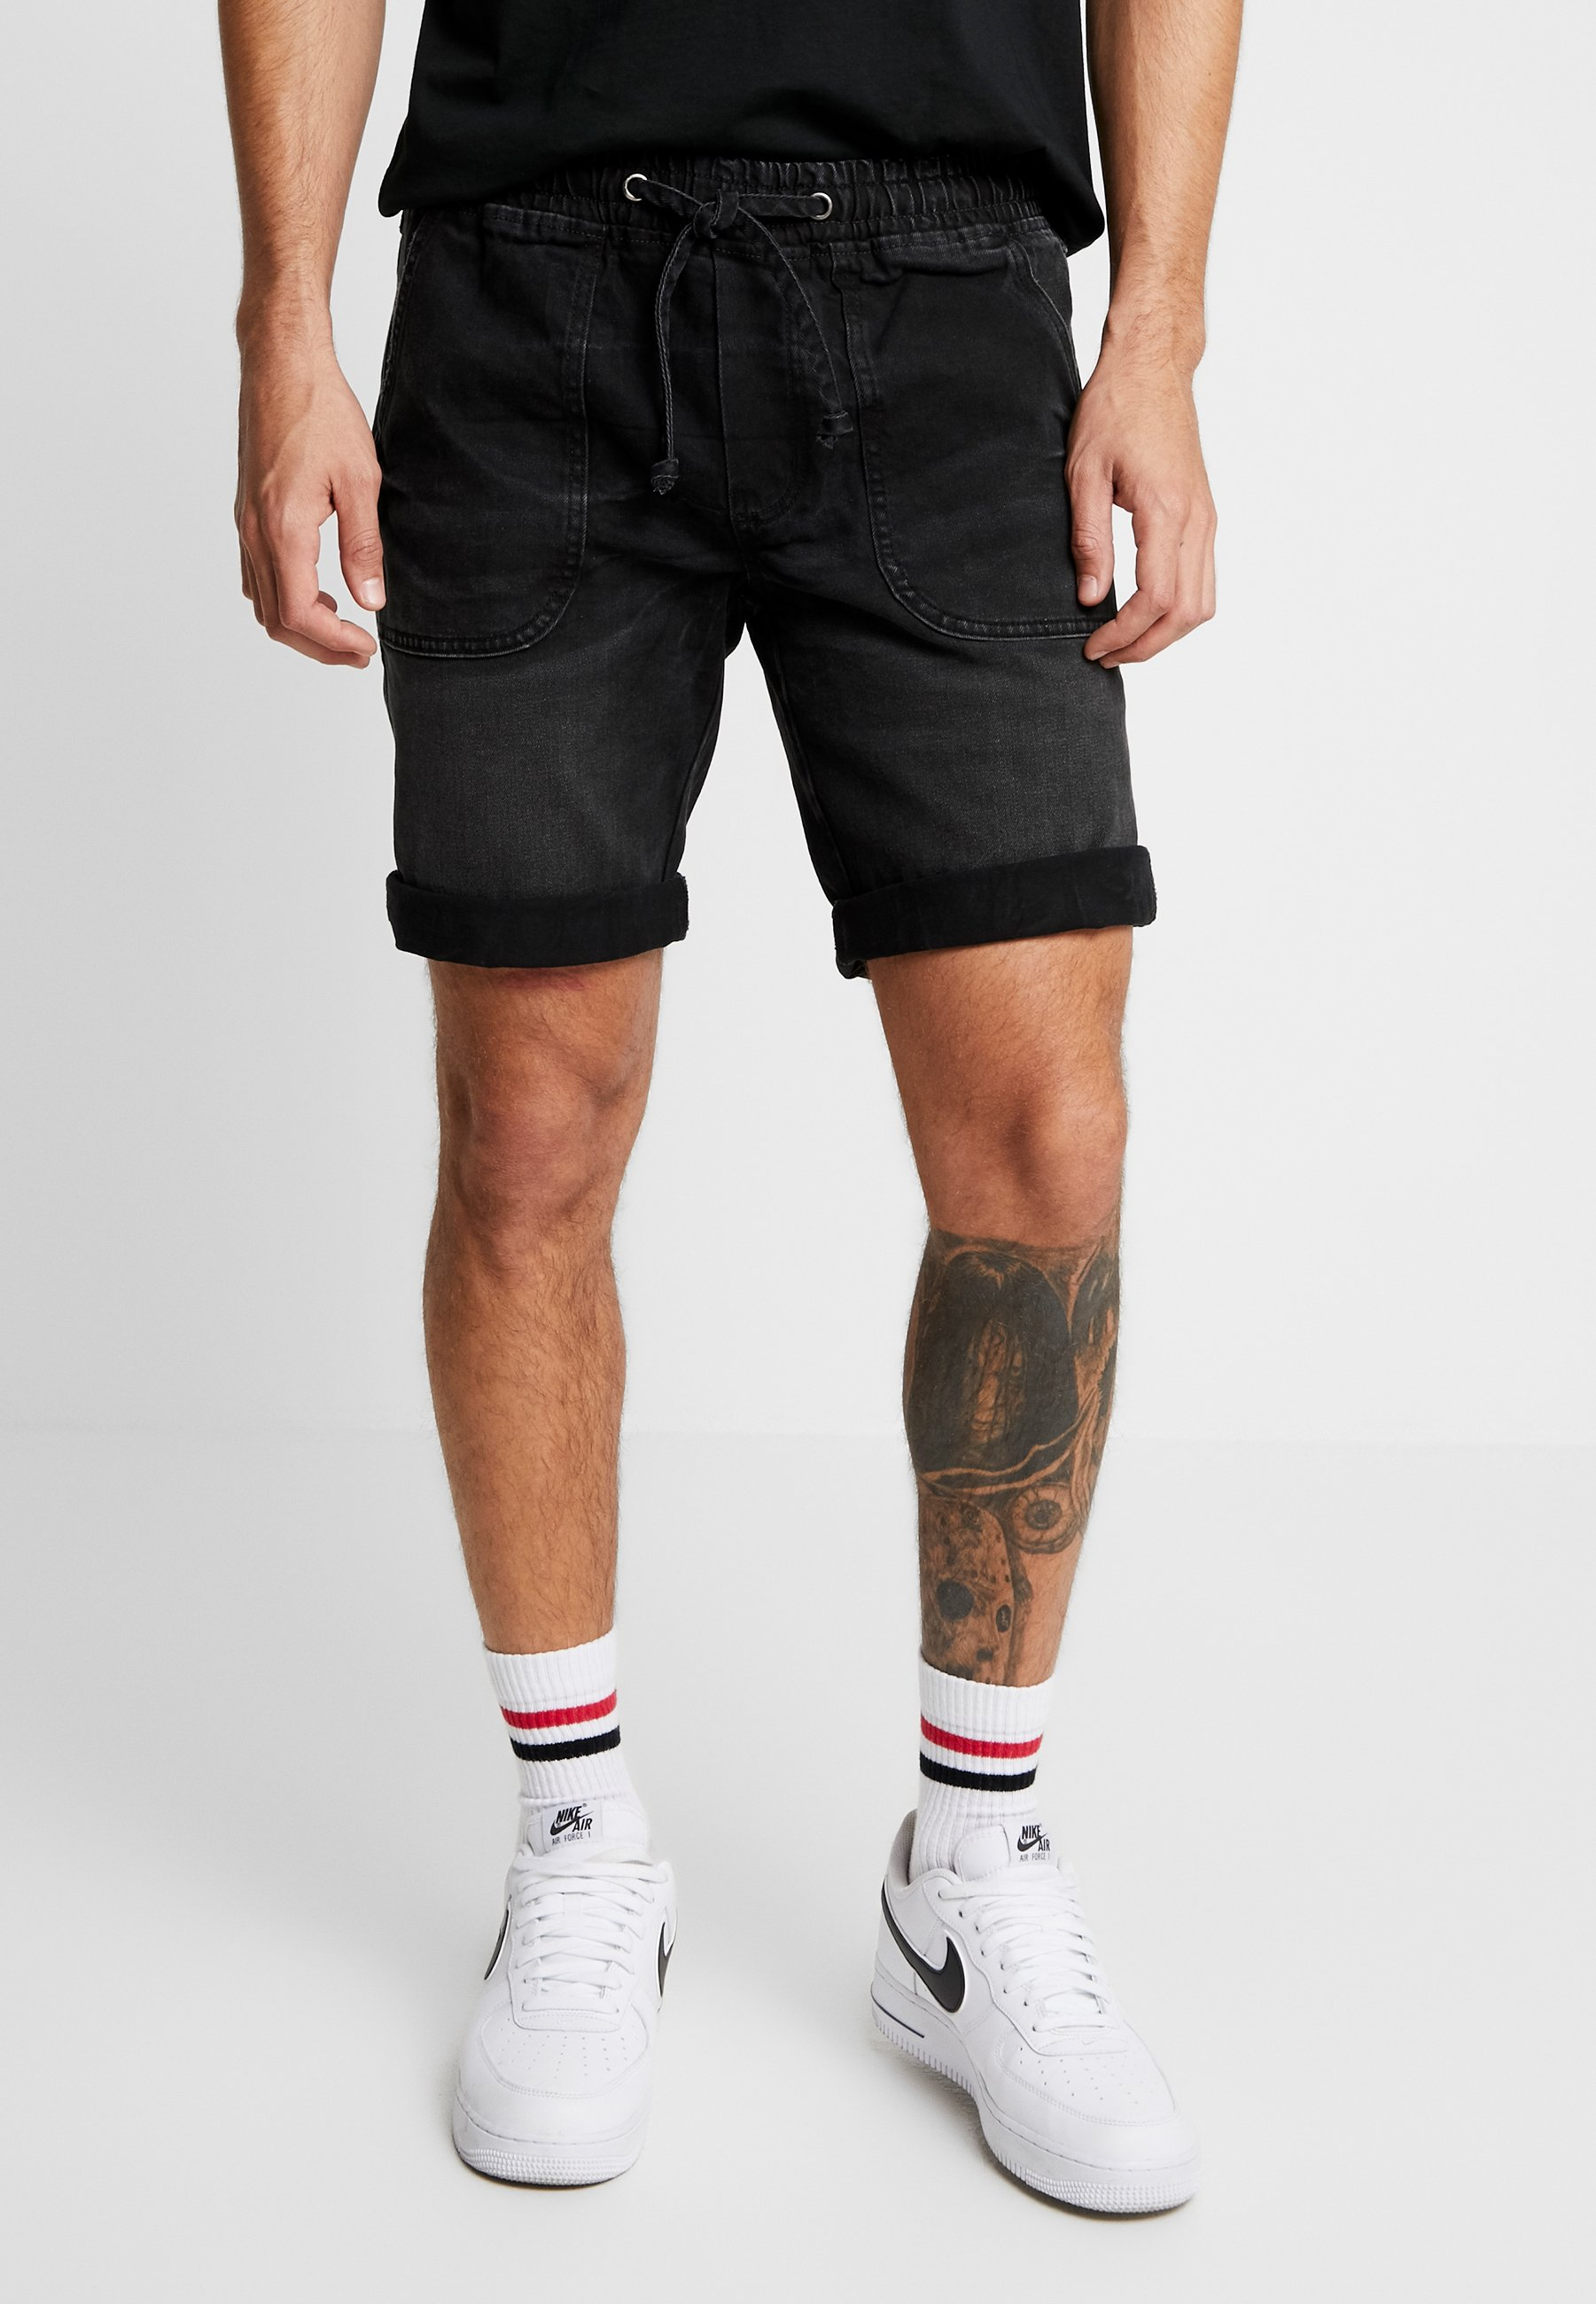 En Redefined Jean DestroyShort Cologne Marble Rebel Black y0w8nOvNm